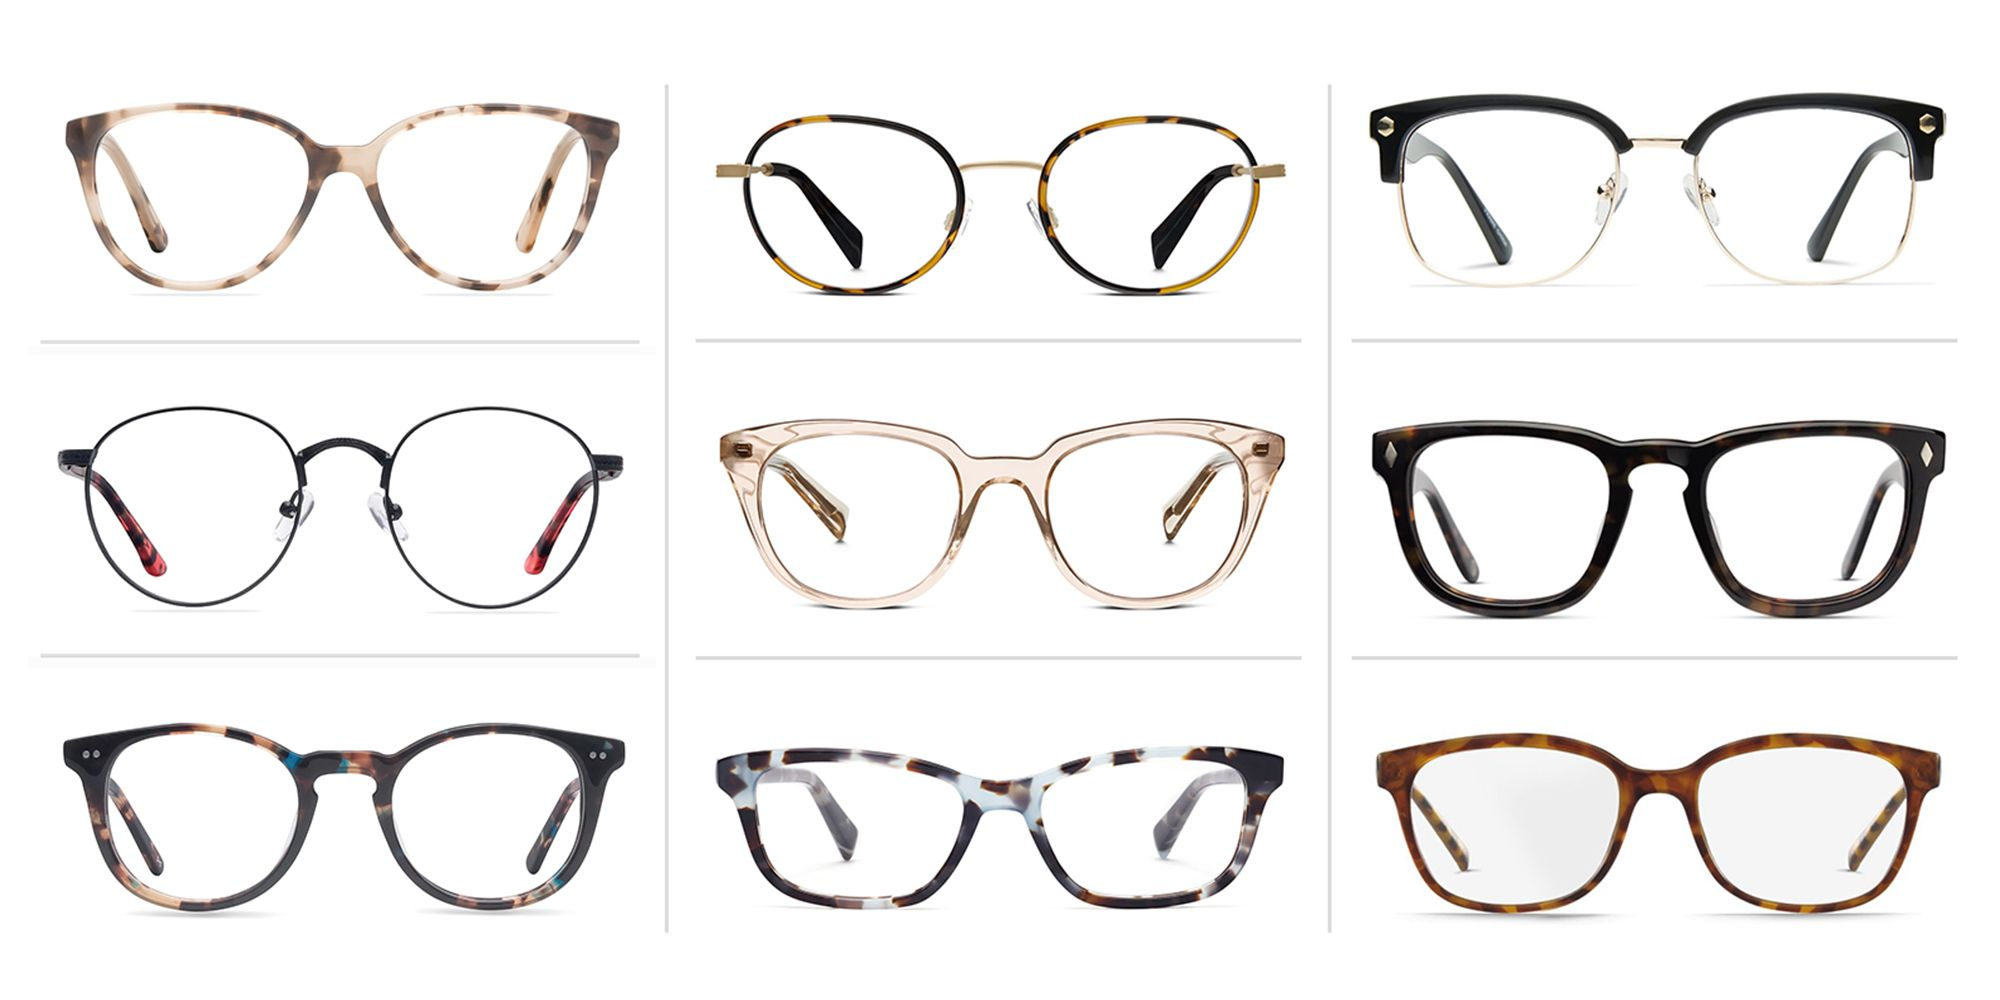 cfebc4ccc7 7 Best Places to Buy Glasses Online 2018 - Where to Buy Cheap ...